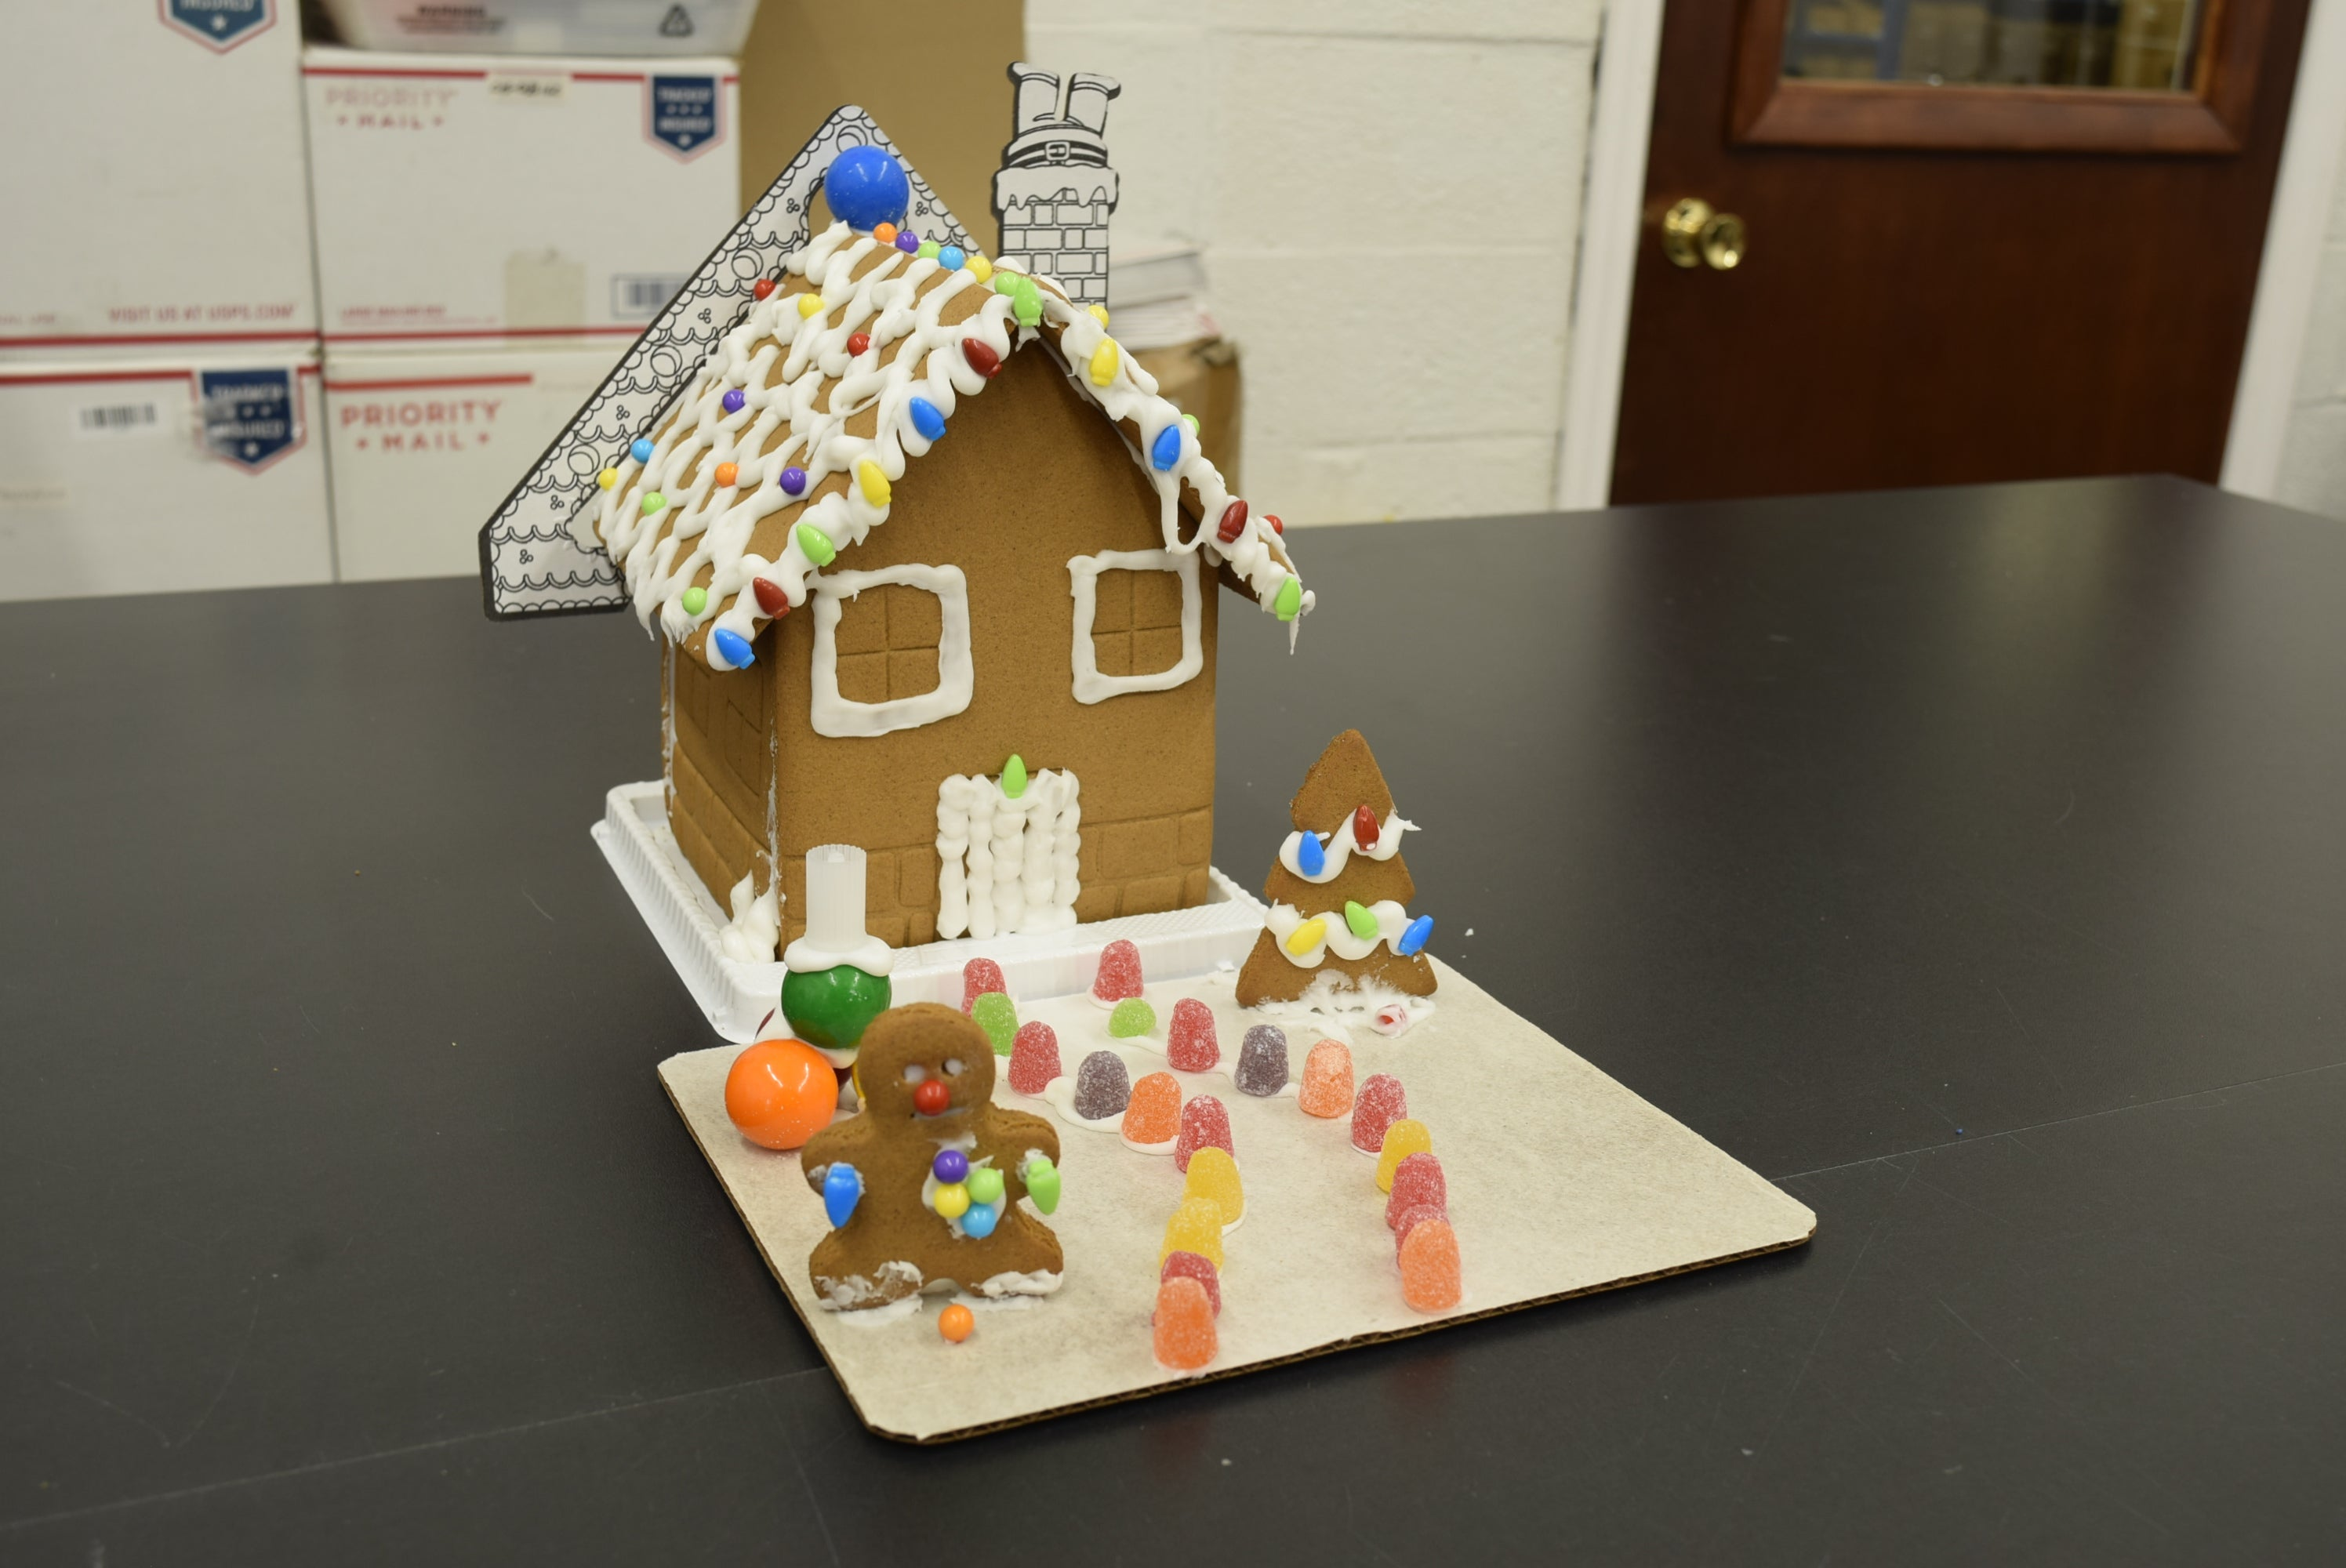 Top 5 Work Event Ideas: Gingerbread House